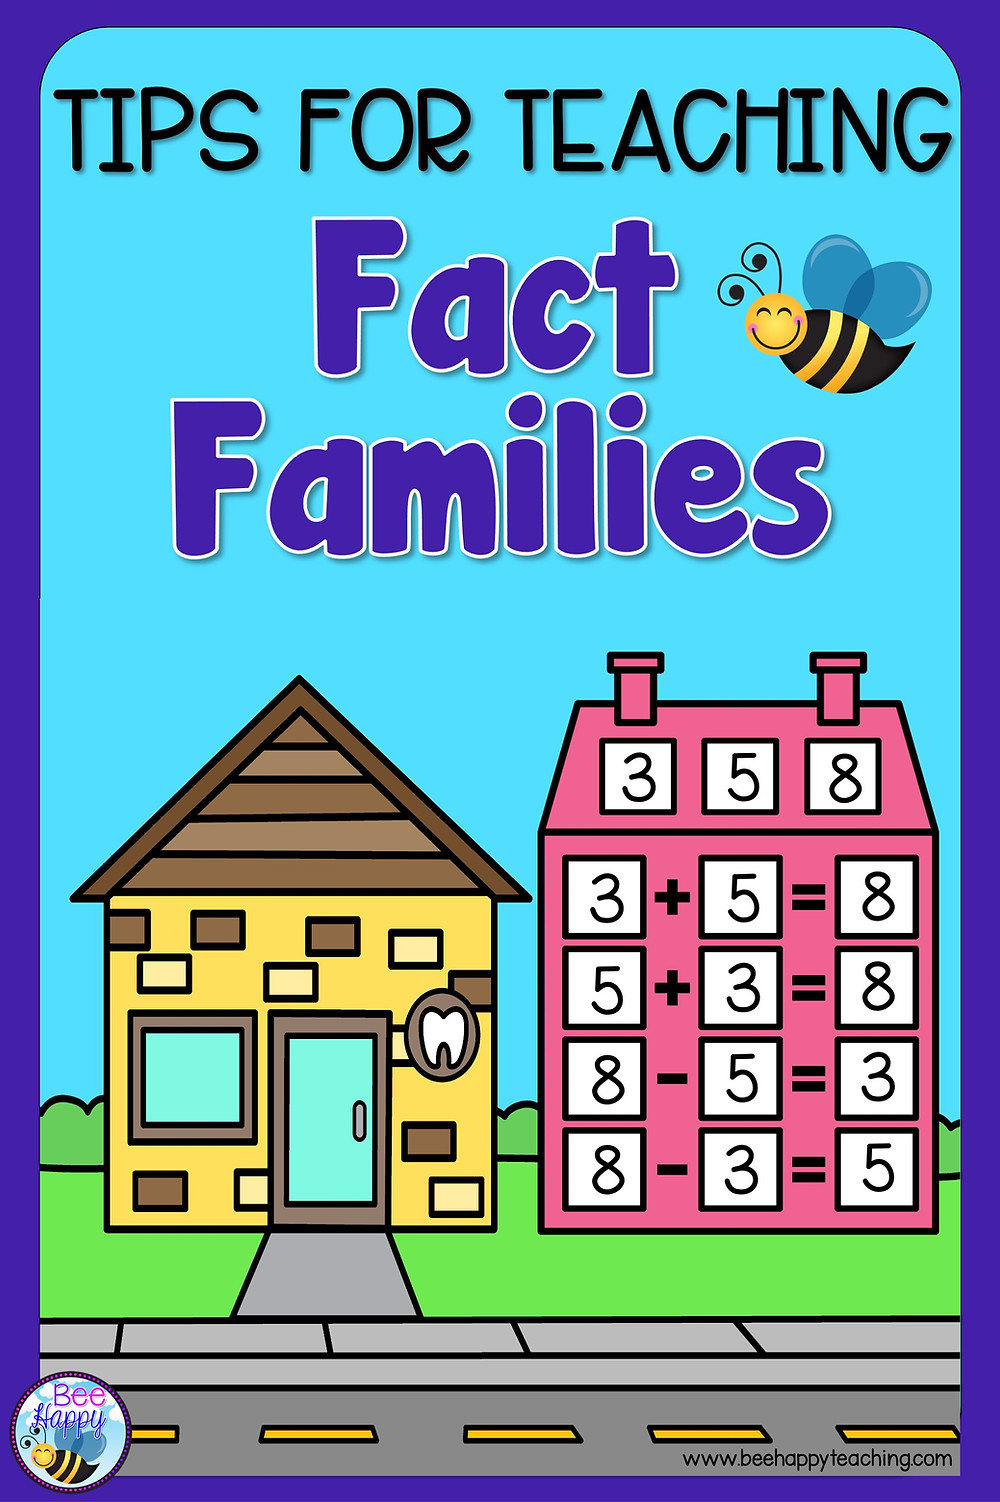 Tips for Teaching Fact Families